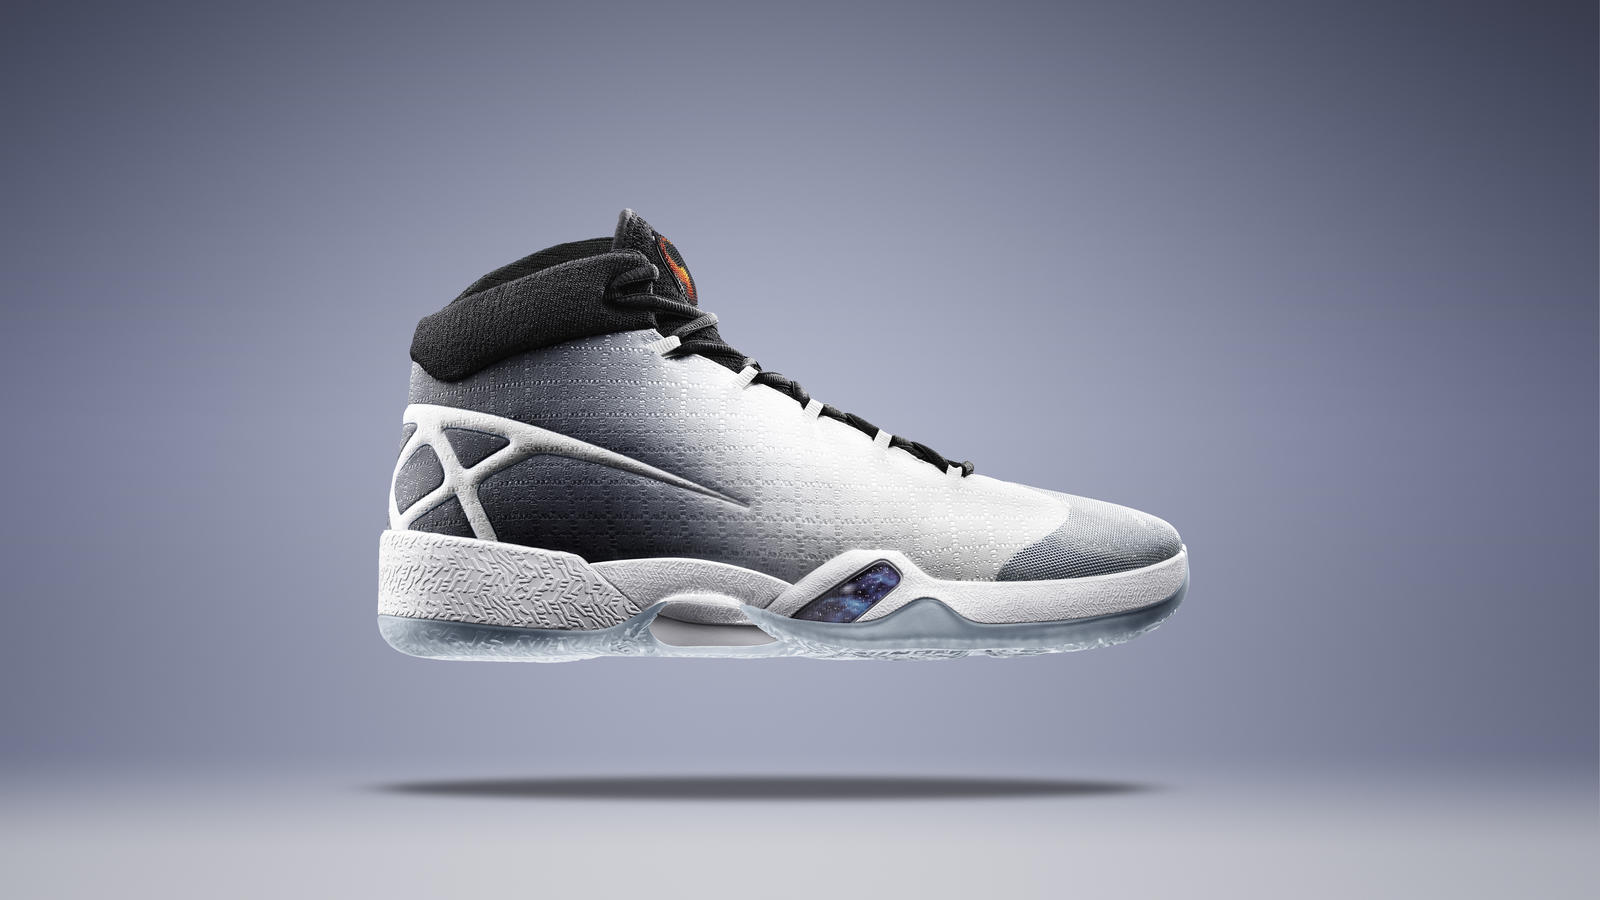 SP16_JD_AJXXX_Lateral_hd_1600 · 15_1208_Tinker_0531_hd_1600. How Do You  Feel About The New Air Jordan ...